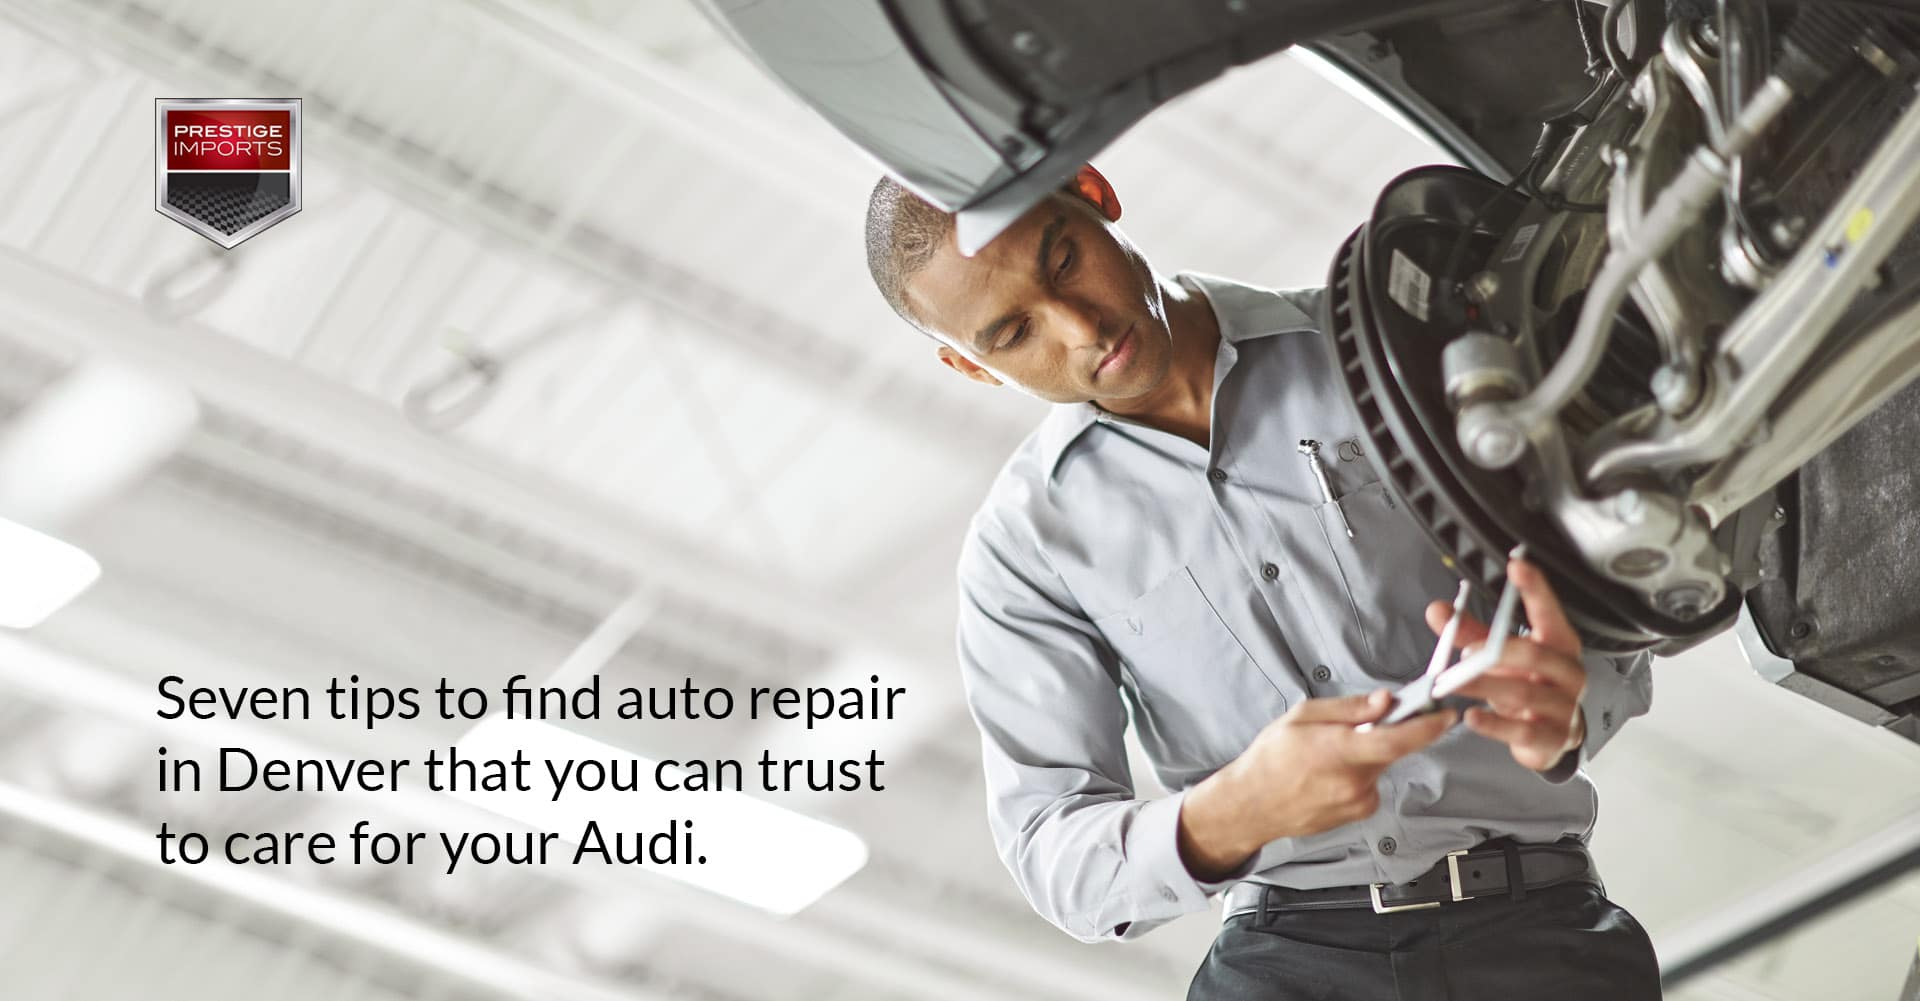 Seven Tips To Find Auto Repair In Denver For Your Audi